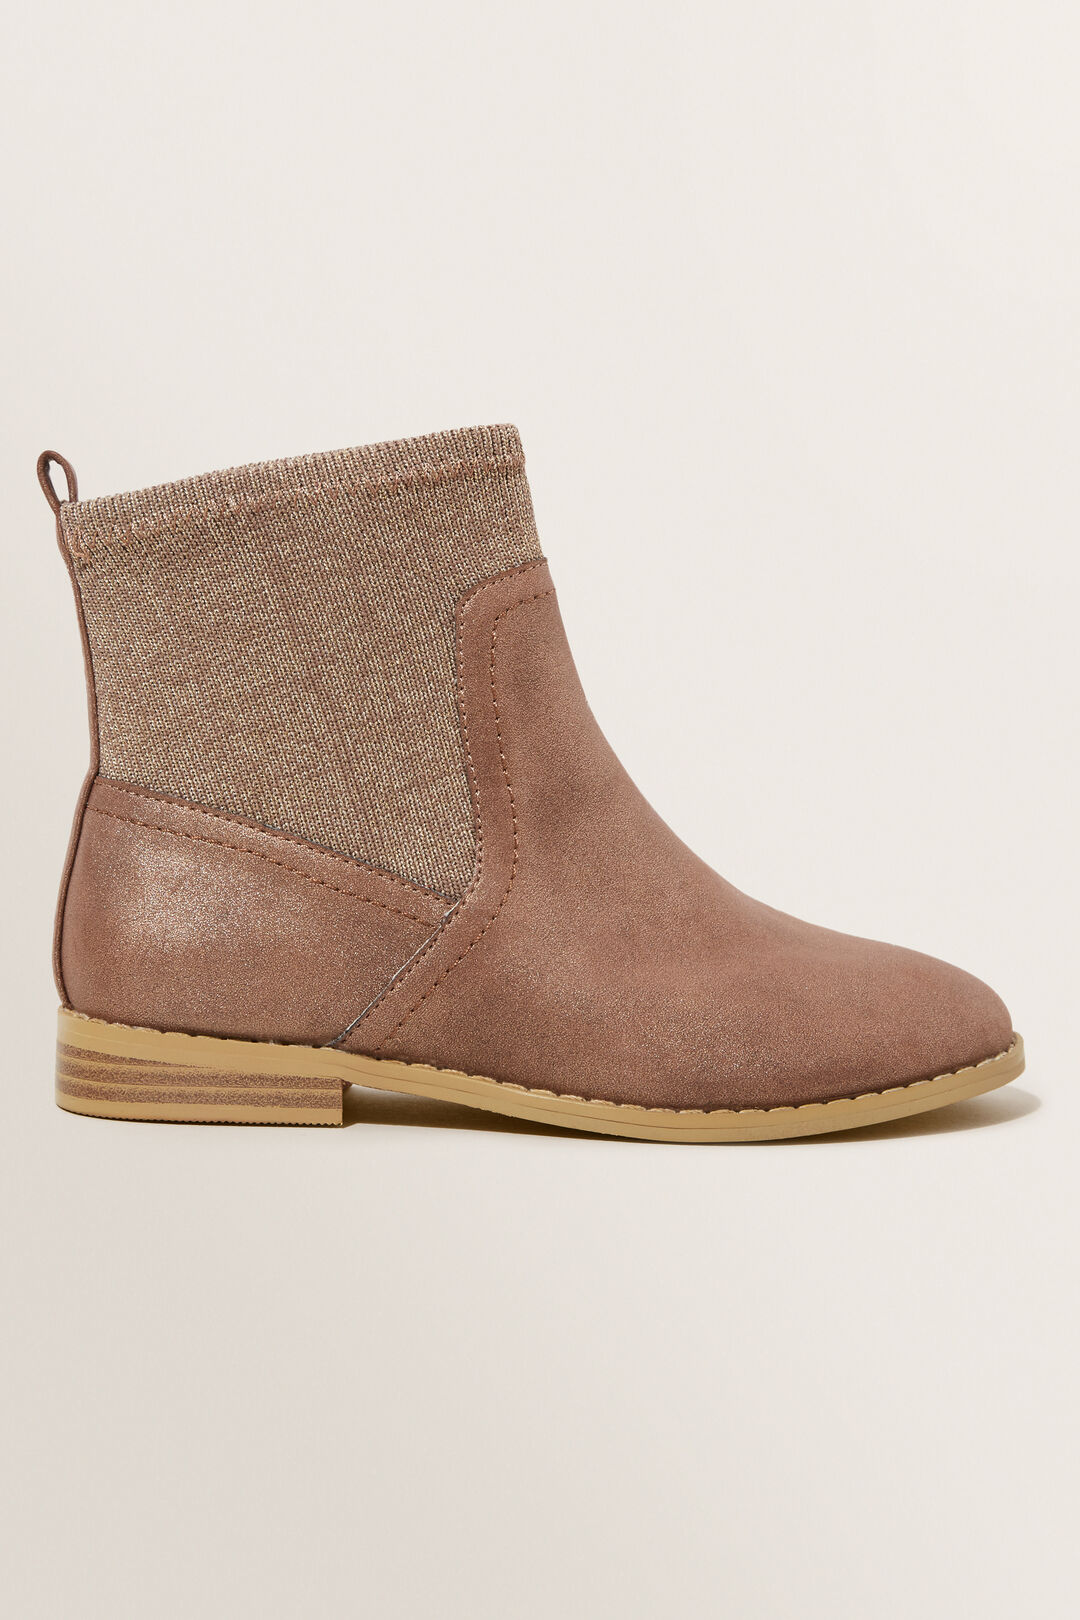 Coco Knit Boot  Brown  hi-res